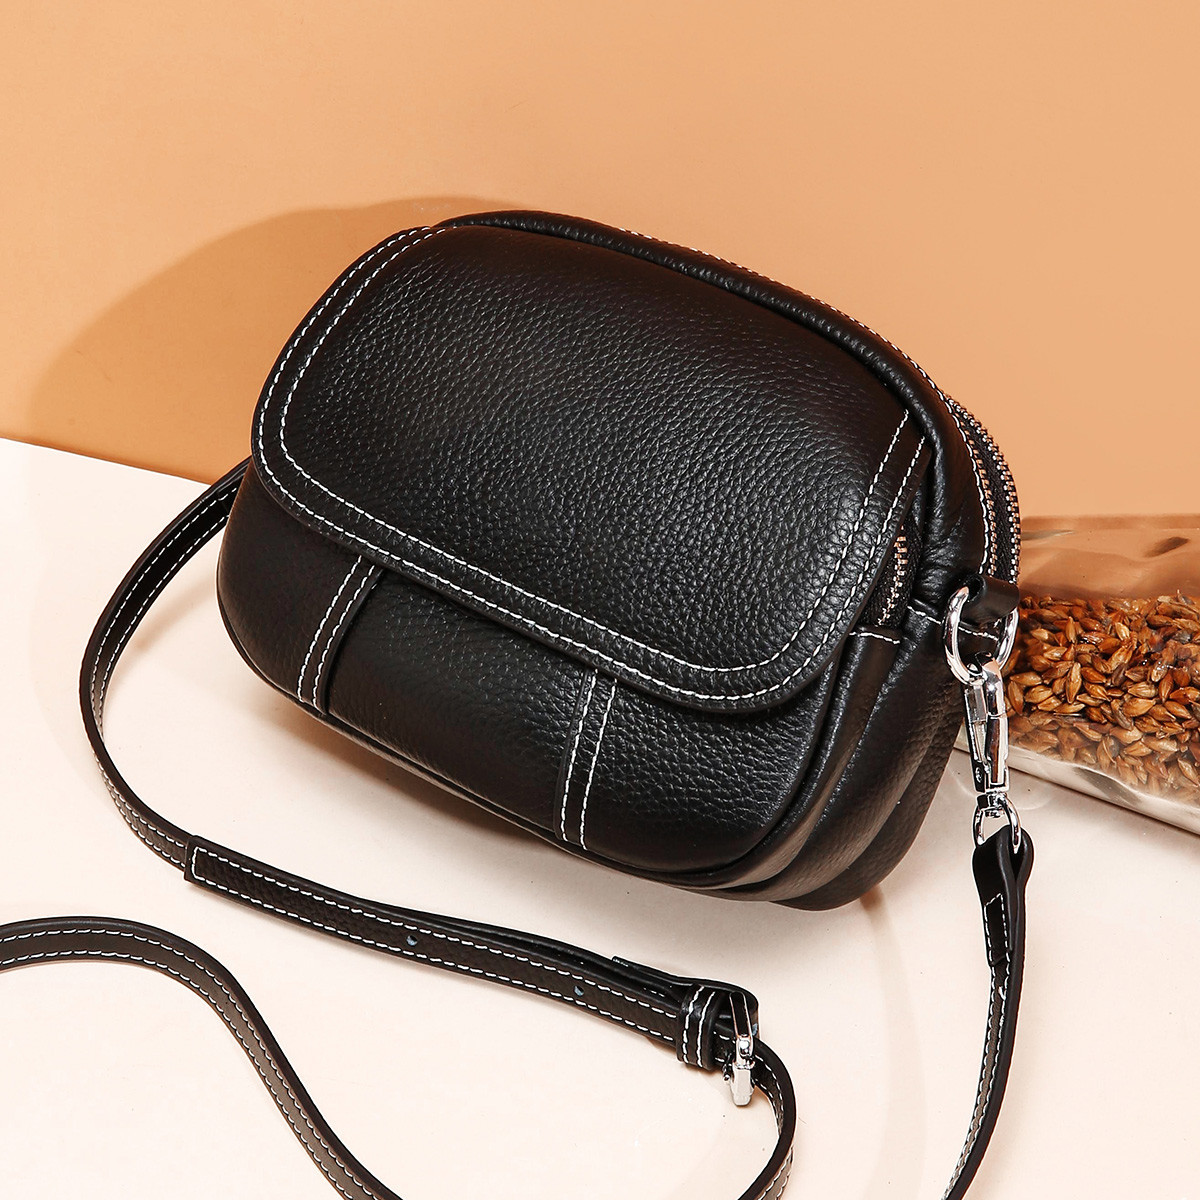 2019 Spring And Summer New Style WOMEN'S Bag Fashion Models Versatile Mini WOMEN'S Leather Bags Cowhide Small round Bag Shoulder